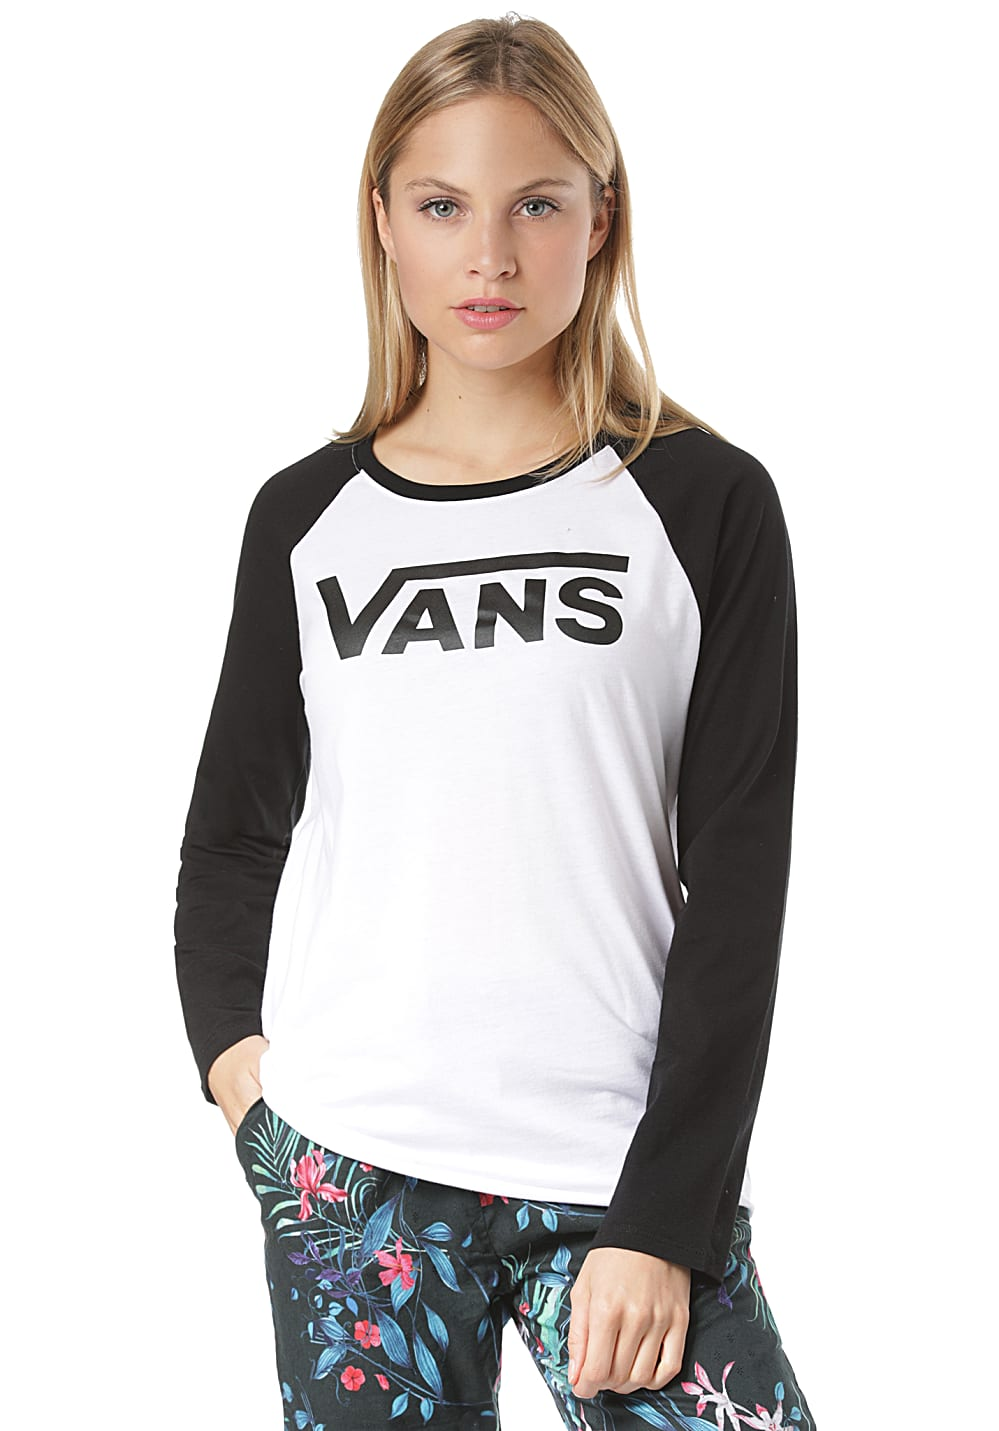 VANS Flying V Langarmshirt für Damen Weiß Planet Sports